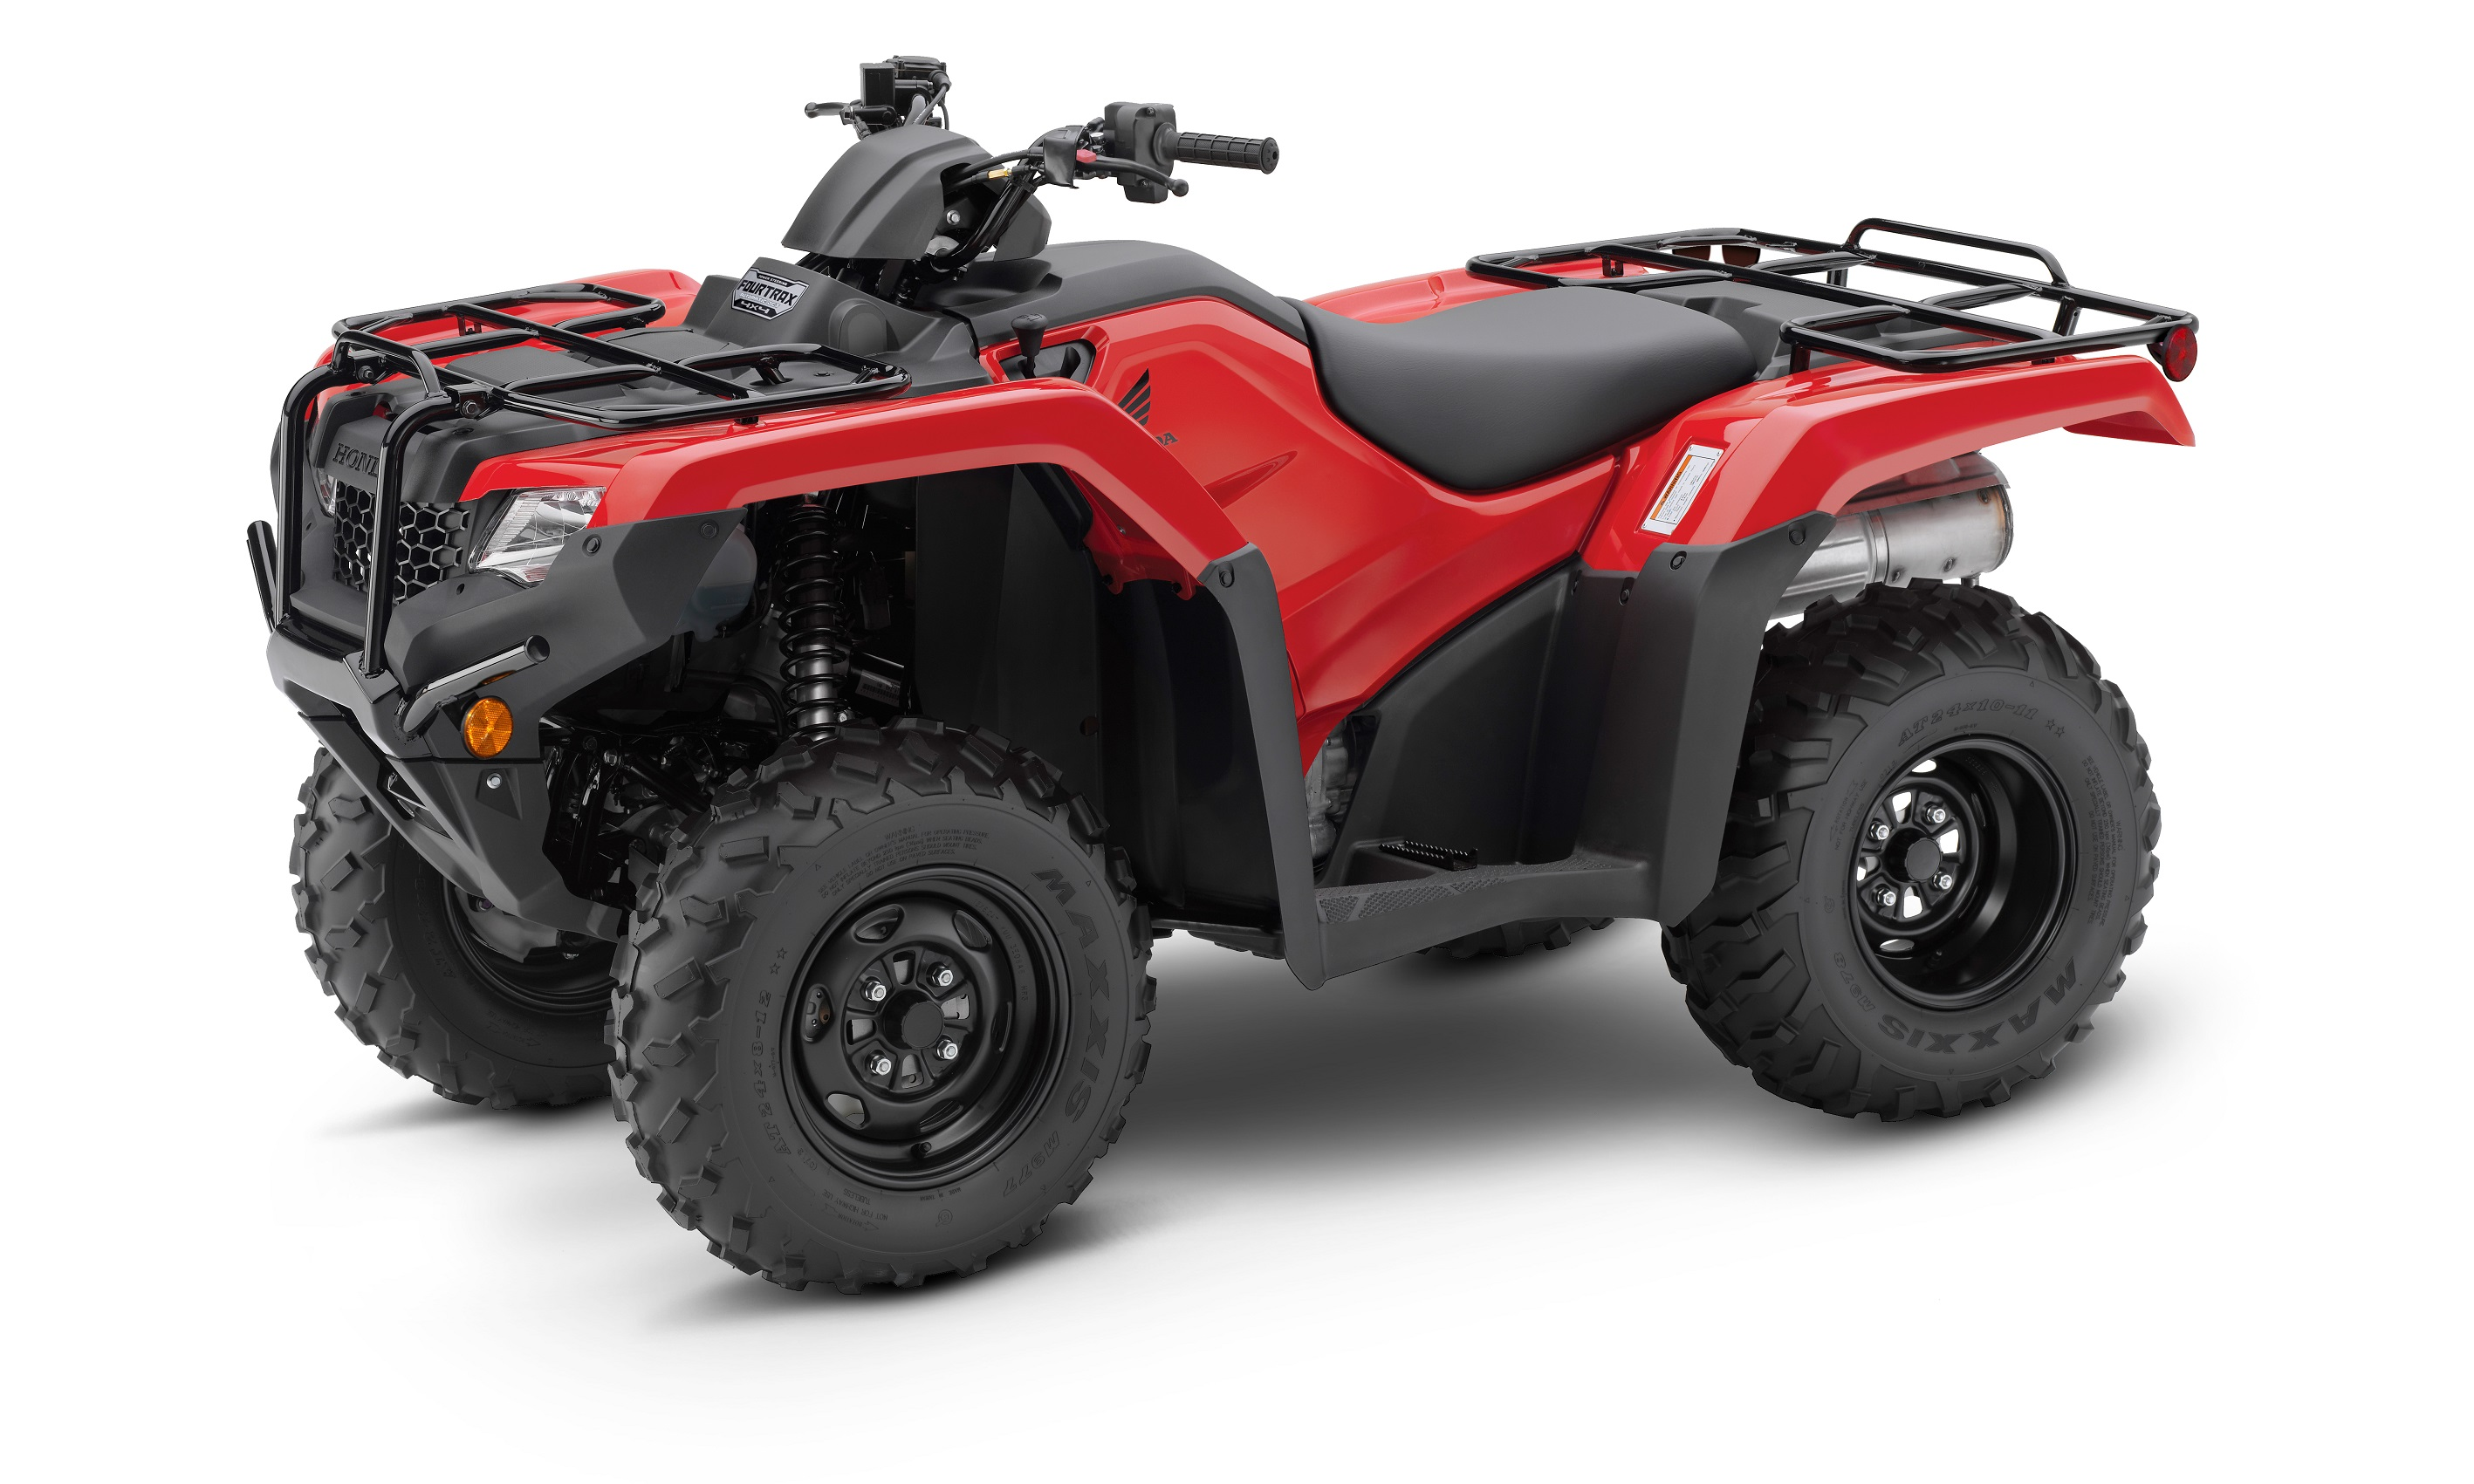 Image of Fourtrax 420 Auto 4wd range